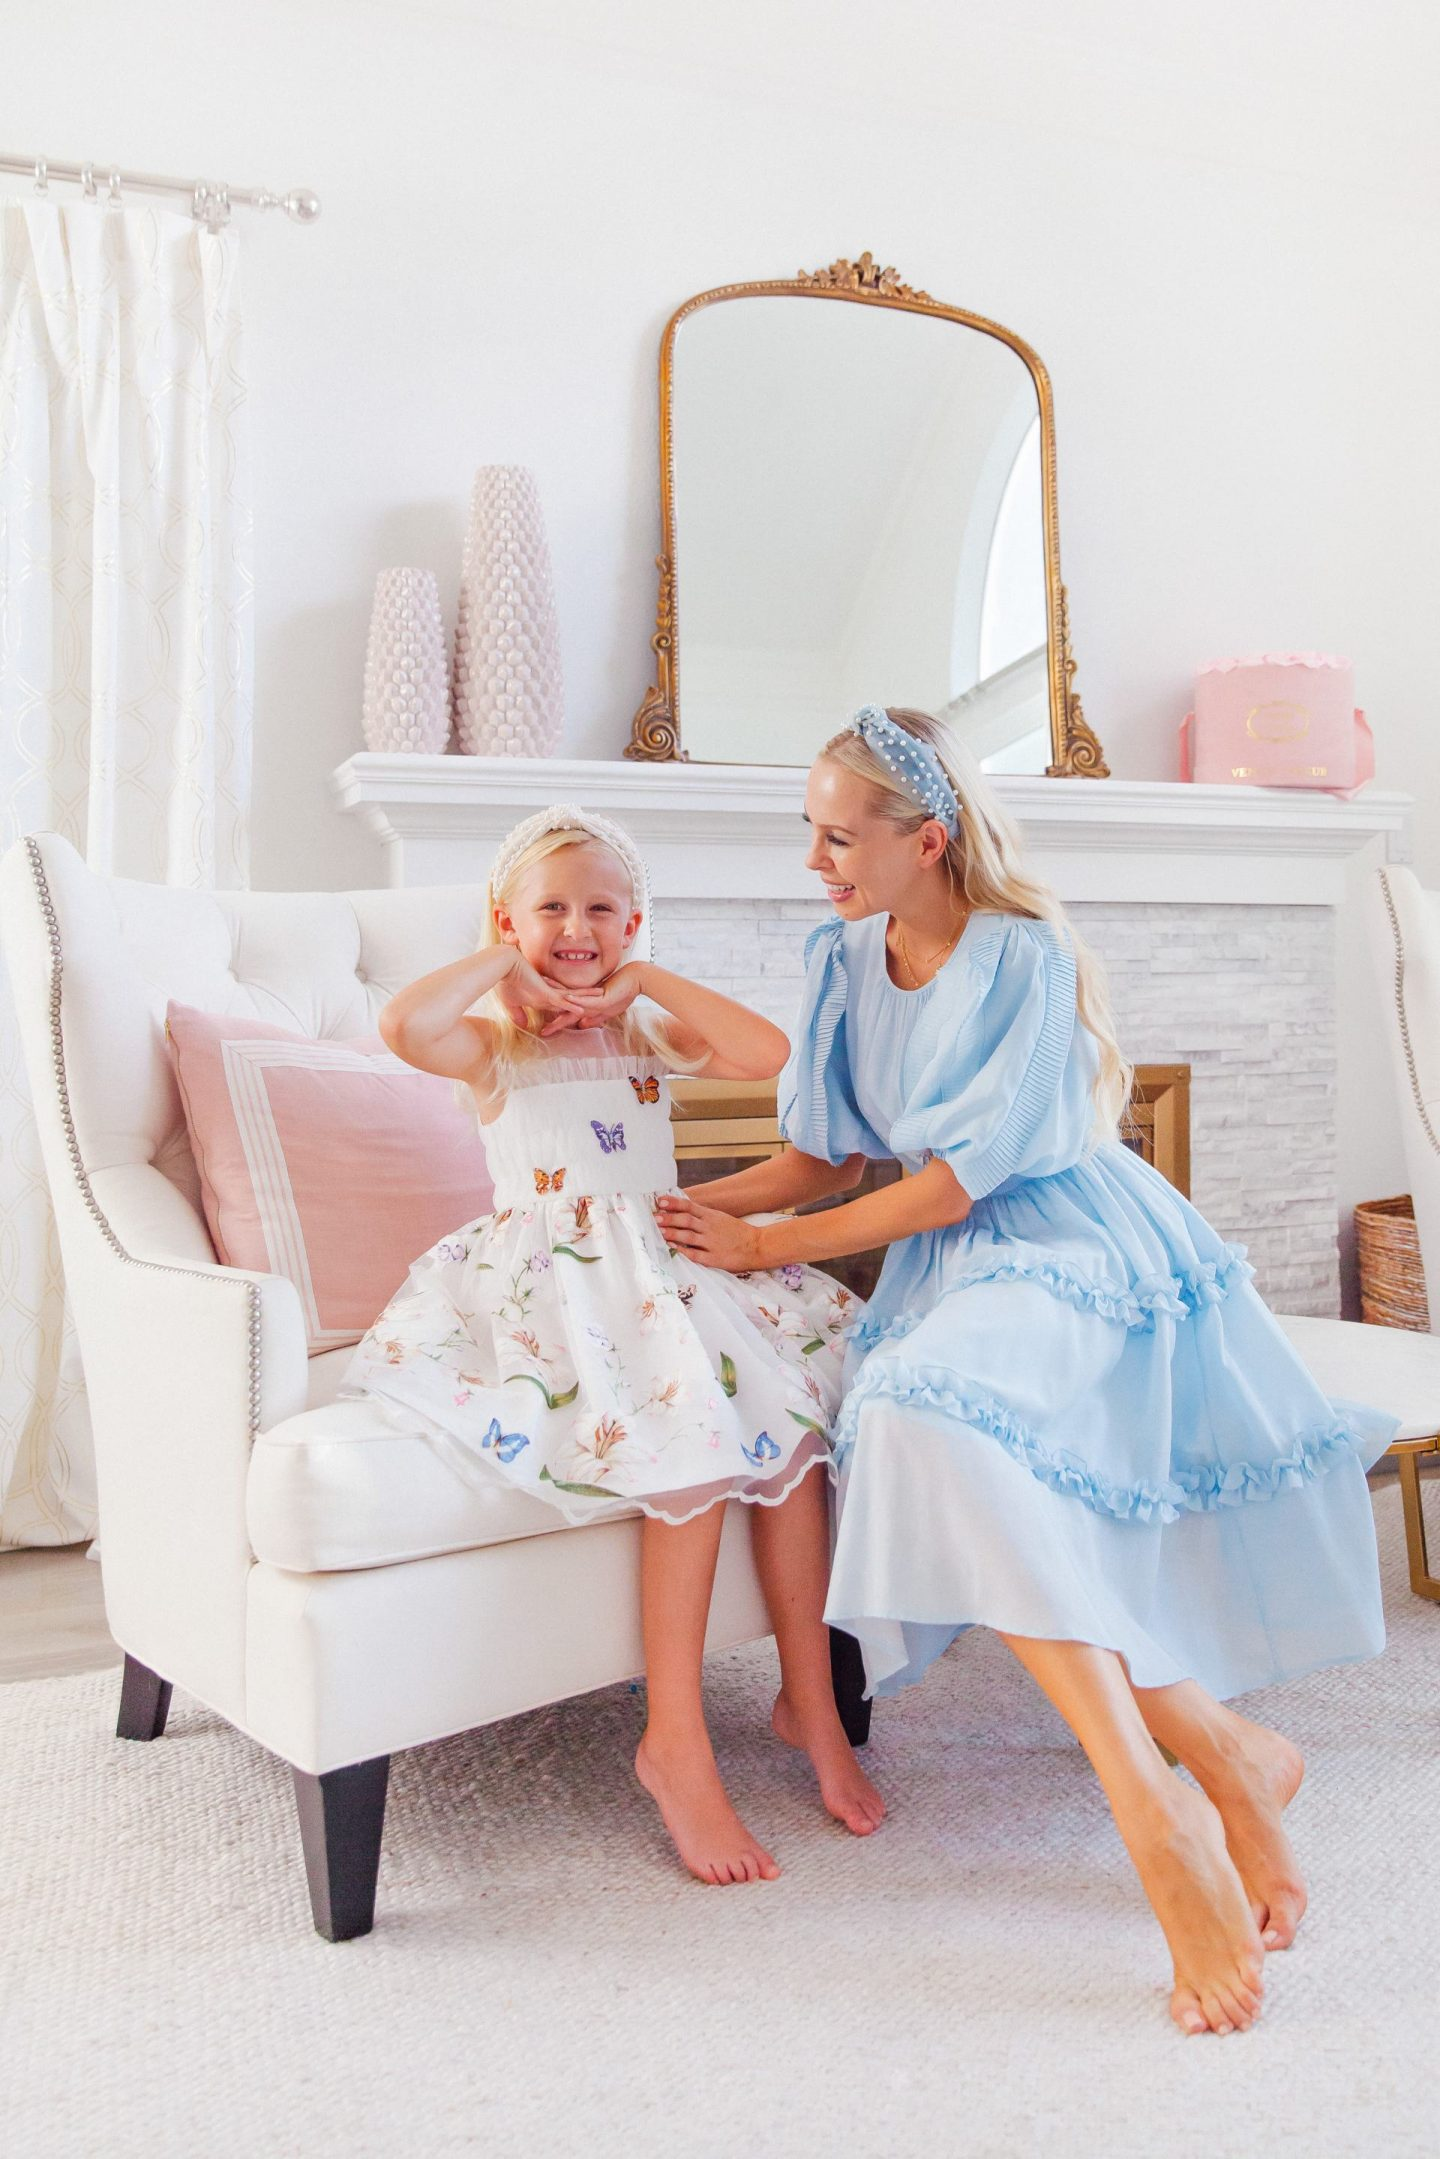 Your complete gift guide for a special Mother's Day, featured by top San Francisco fashion blogger Lombard and Fifth. Gifts for the garden lover, fashion lover, kitchen maven and beauty lover mom.